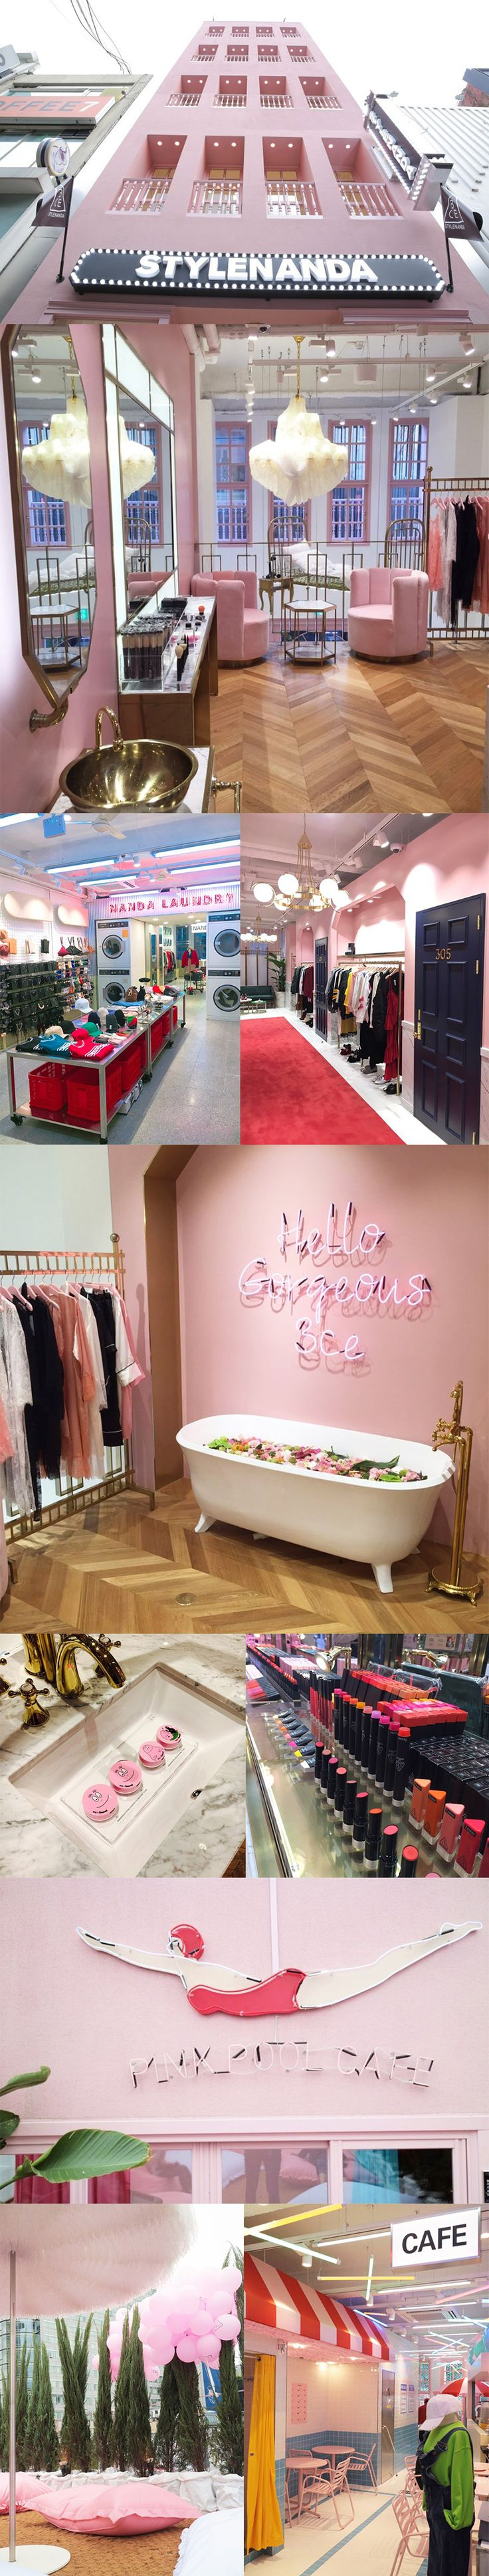 best 25+ pink hotel ideas on pinterest | tropicana hotel, boutique